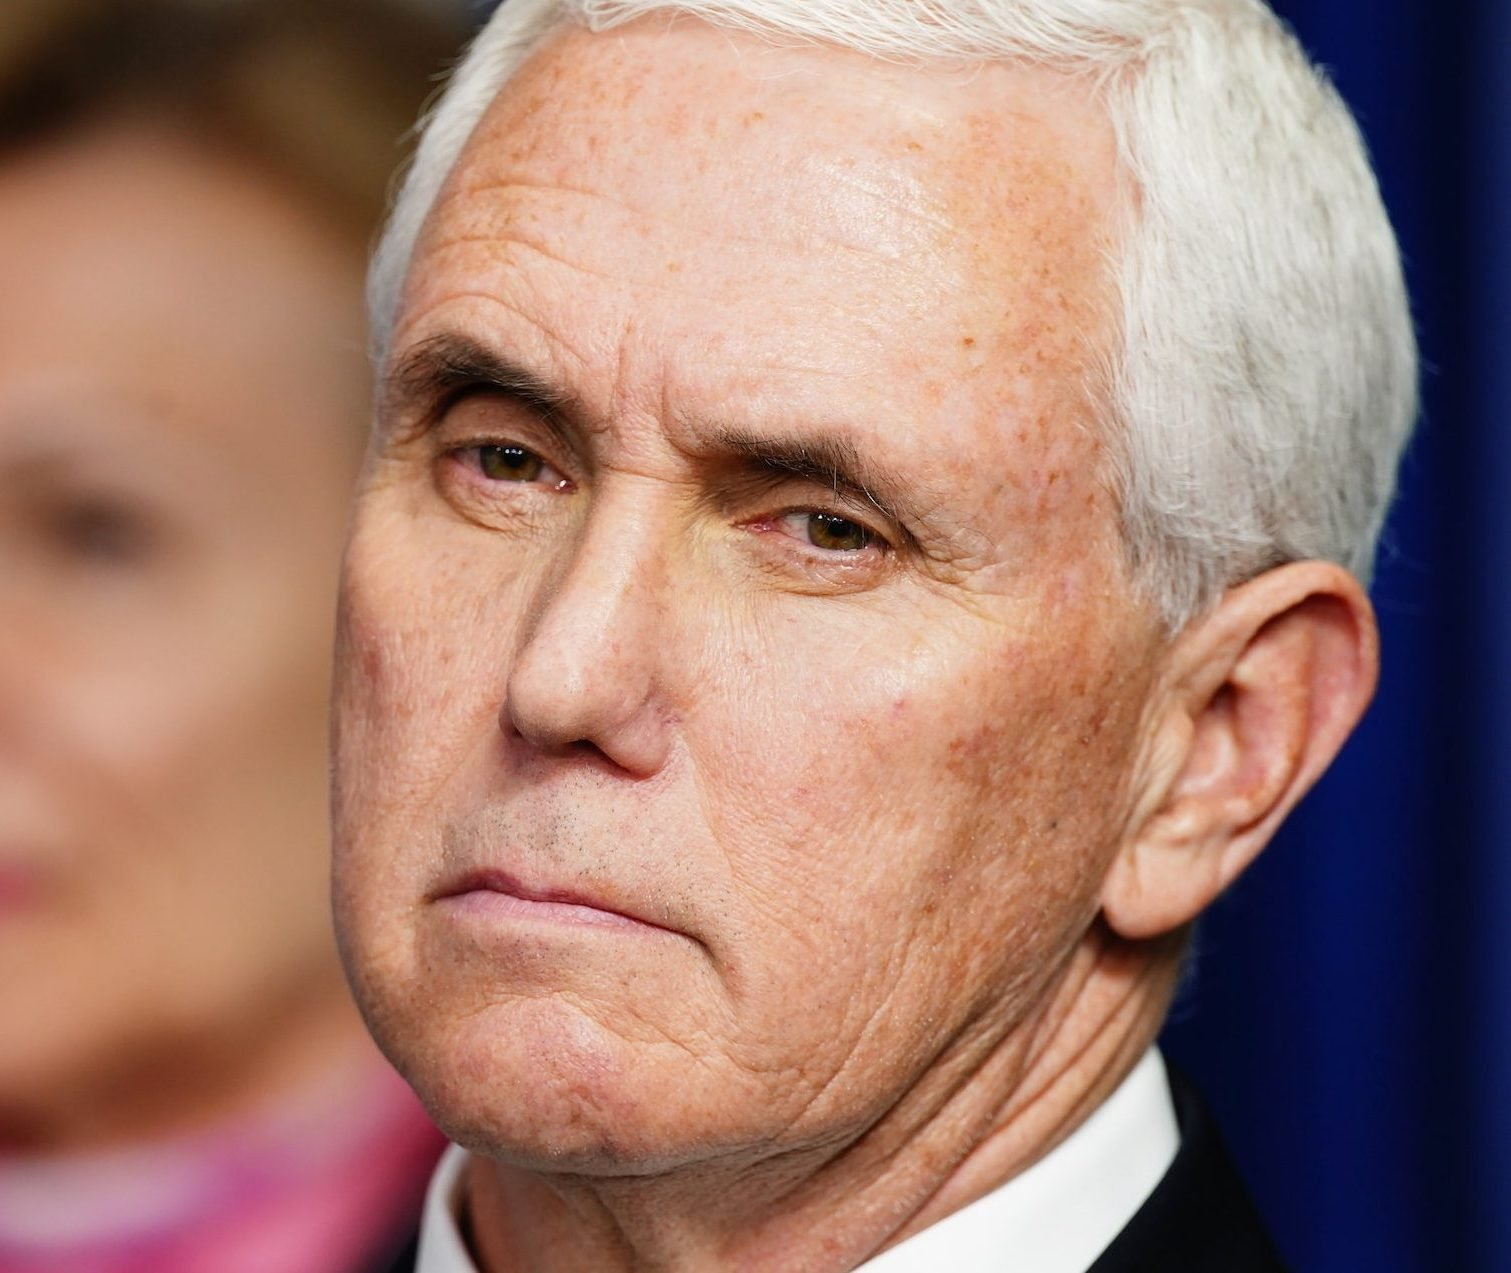 Where Did Mike Pence Go to College?